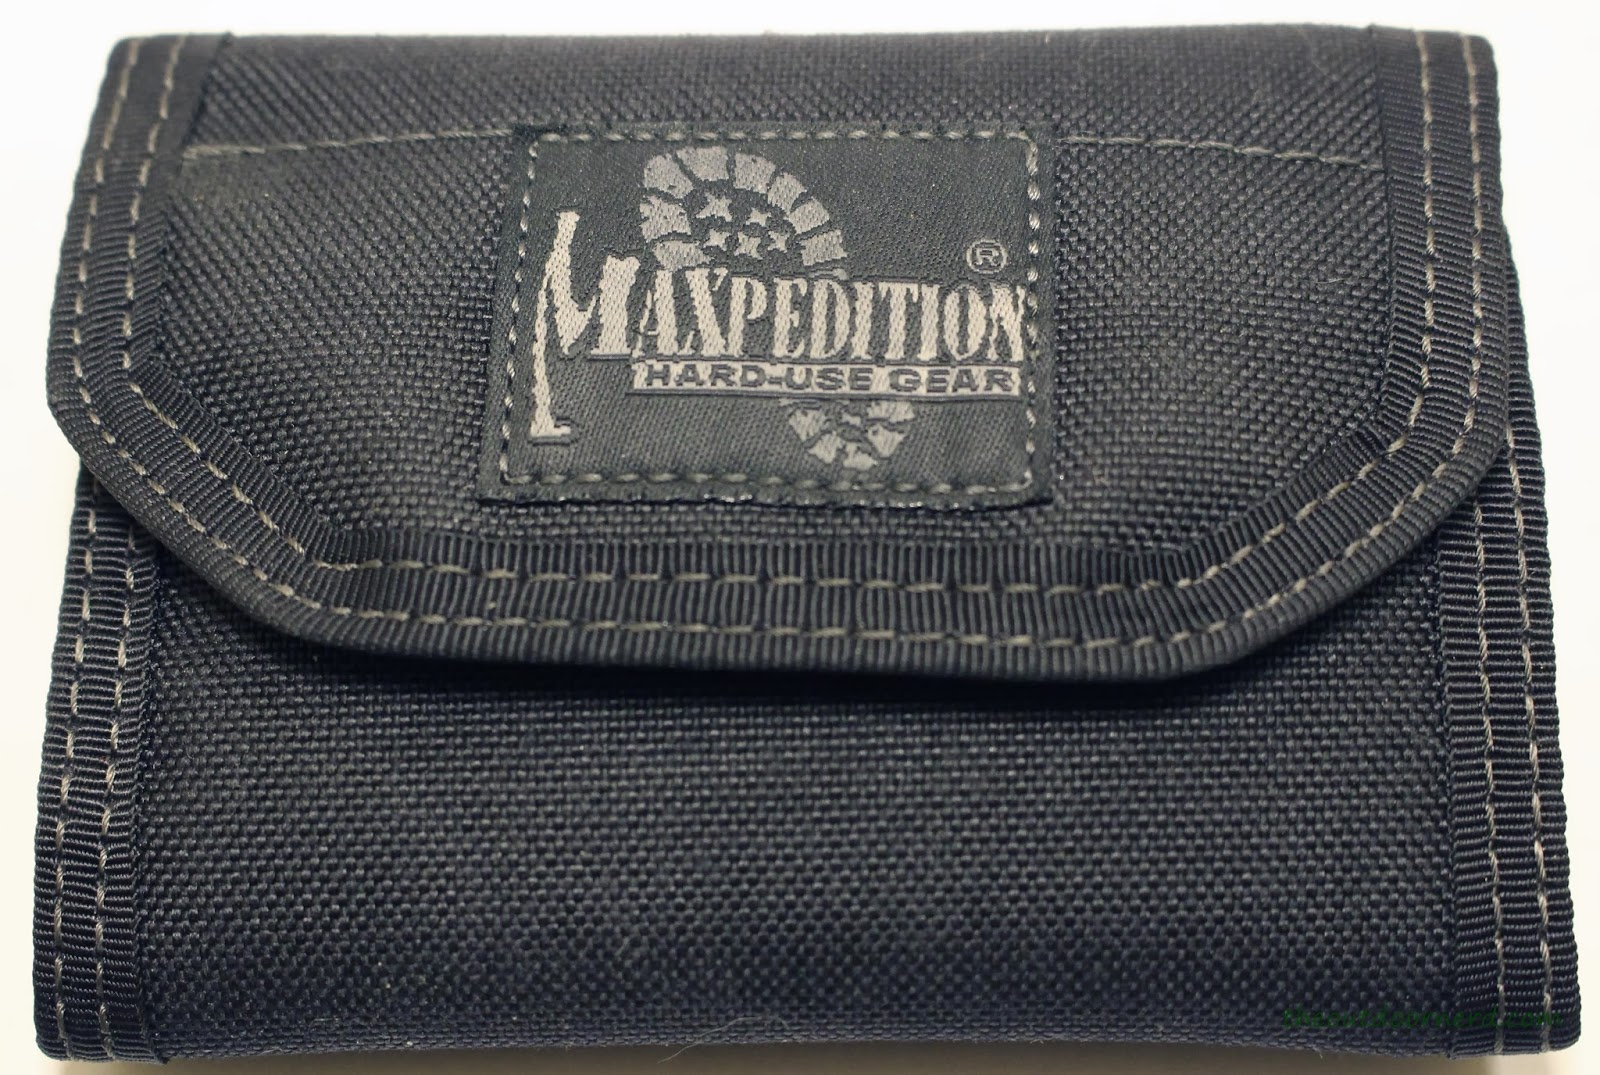 Maxpedition C.M.C Wallet - Top View